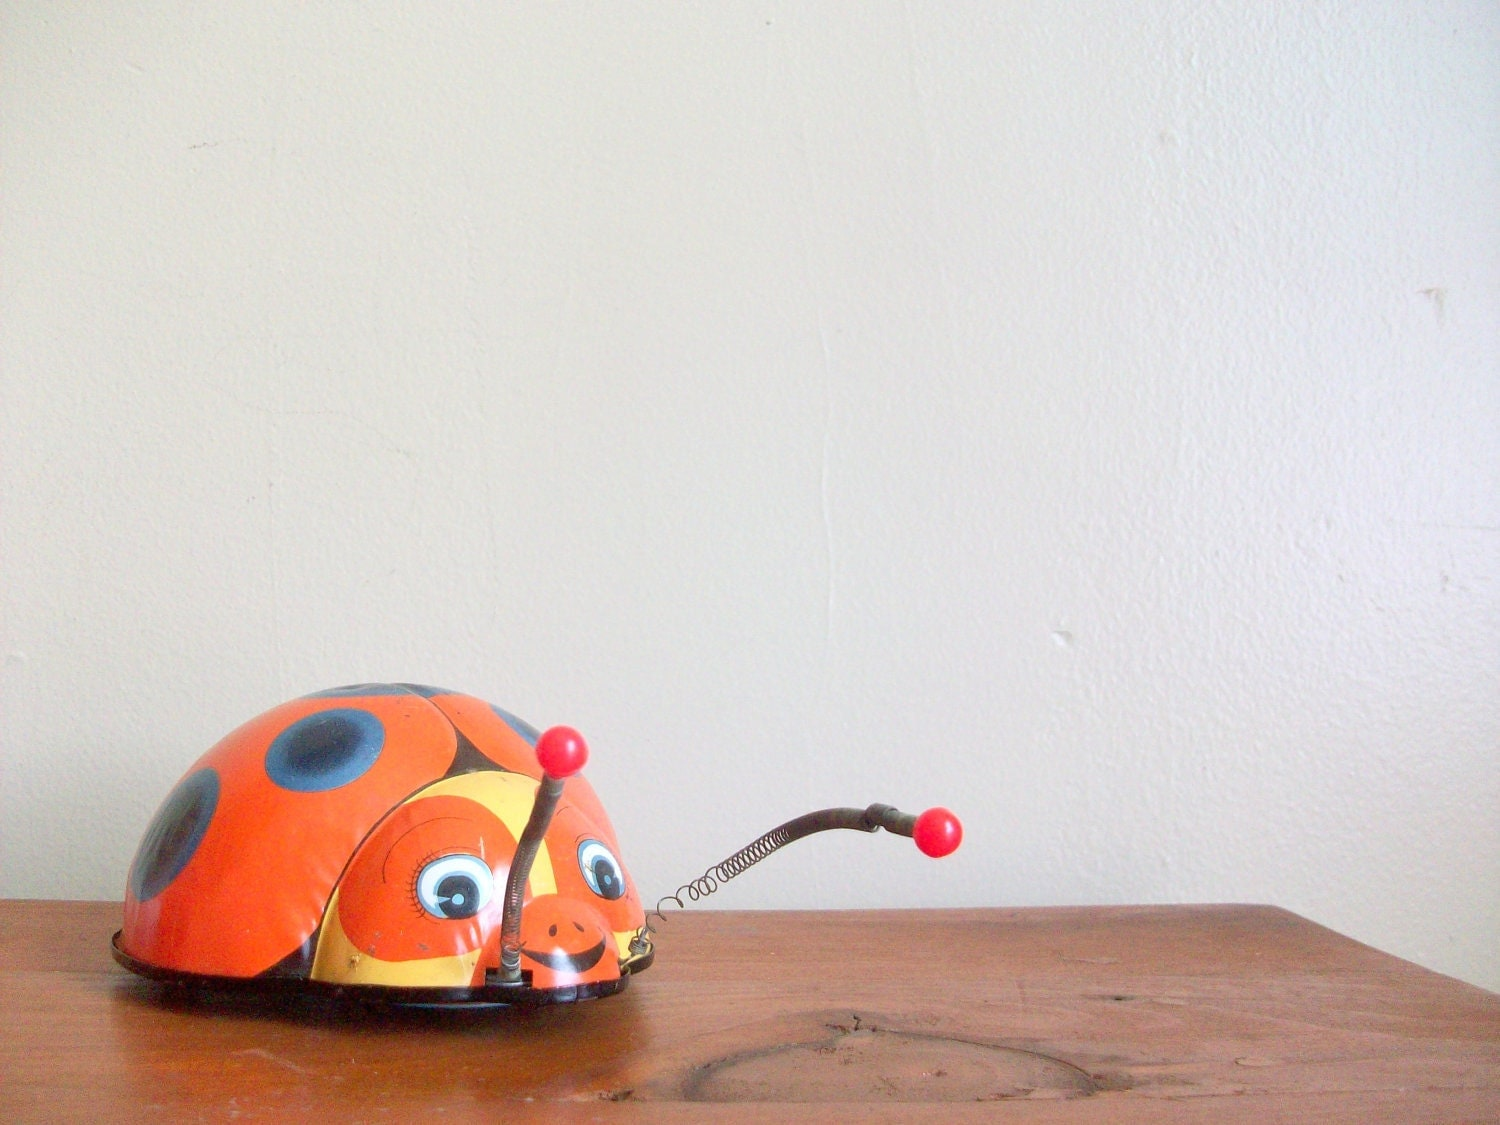 six dollar sale - reduced sale - mechanical wind up lady bug toy - for kids - insect - metal - compostthis